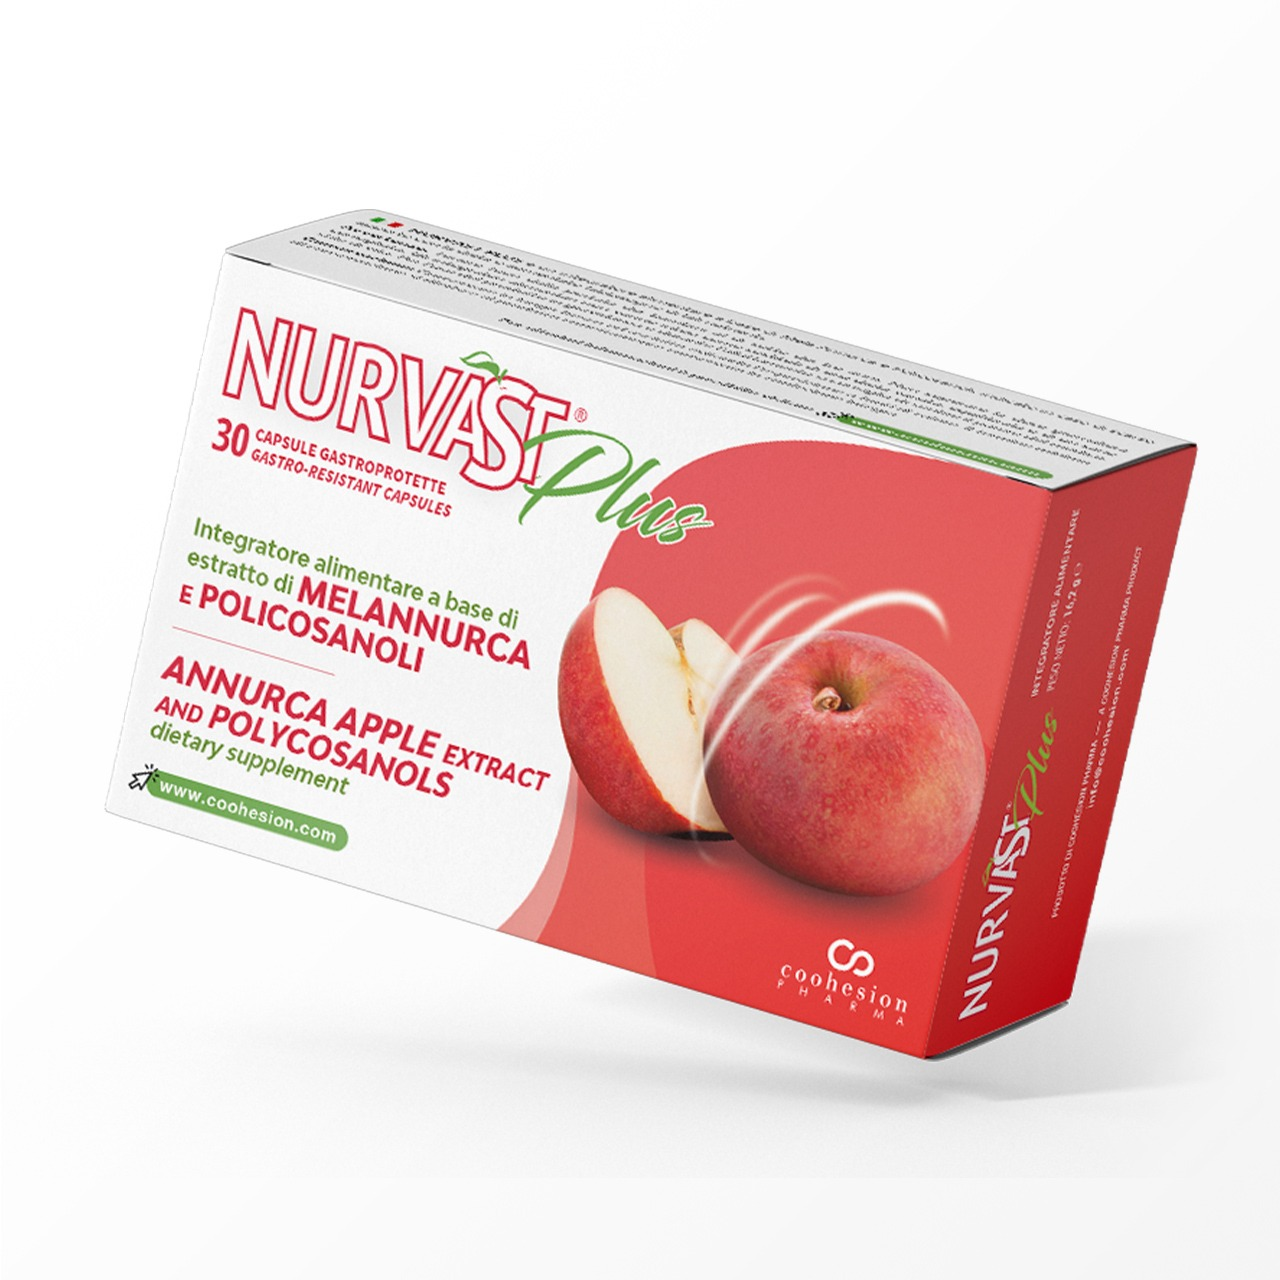 Nurvast Plus - Annurca apple extract and Polycosanols based dietary supplement